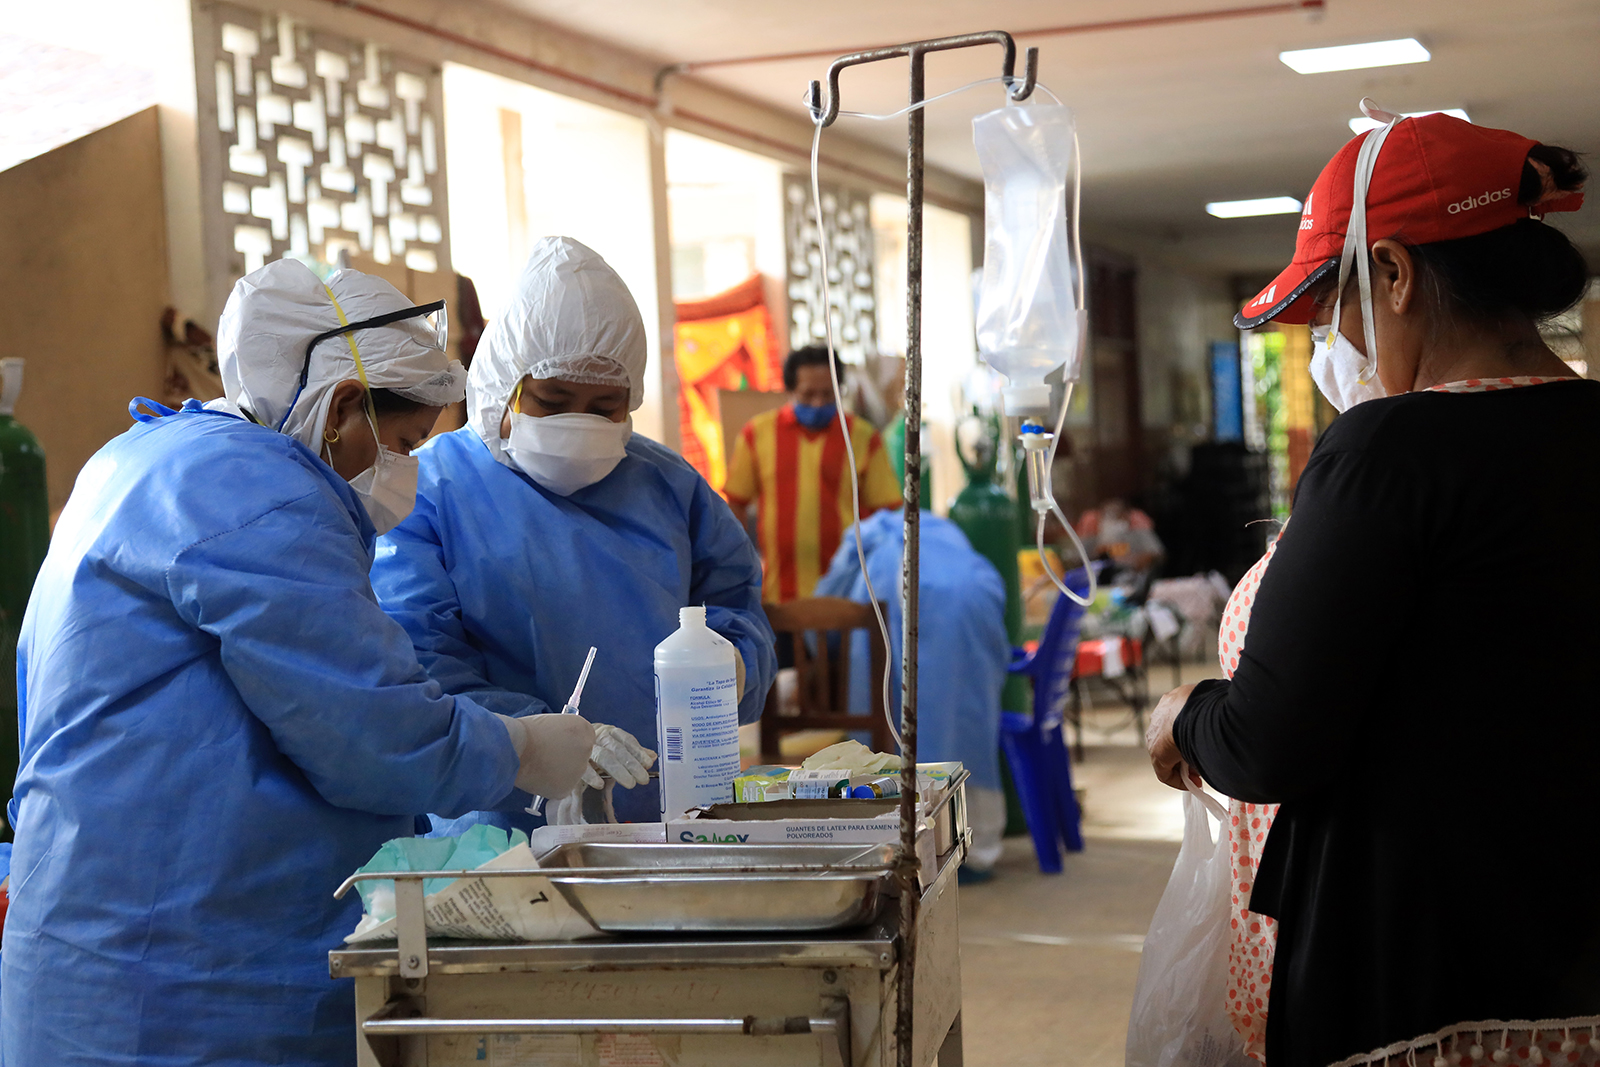 Nurses wearing personal protective equipment (PPE) work at at Regional Hospital of Loreto Felipe Arriola Iglesias in Iquitos, Peru, on May 20.